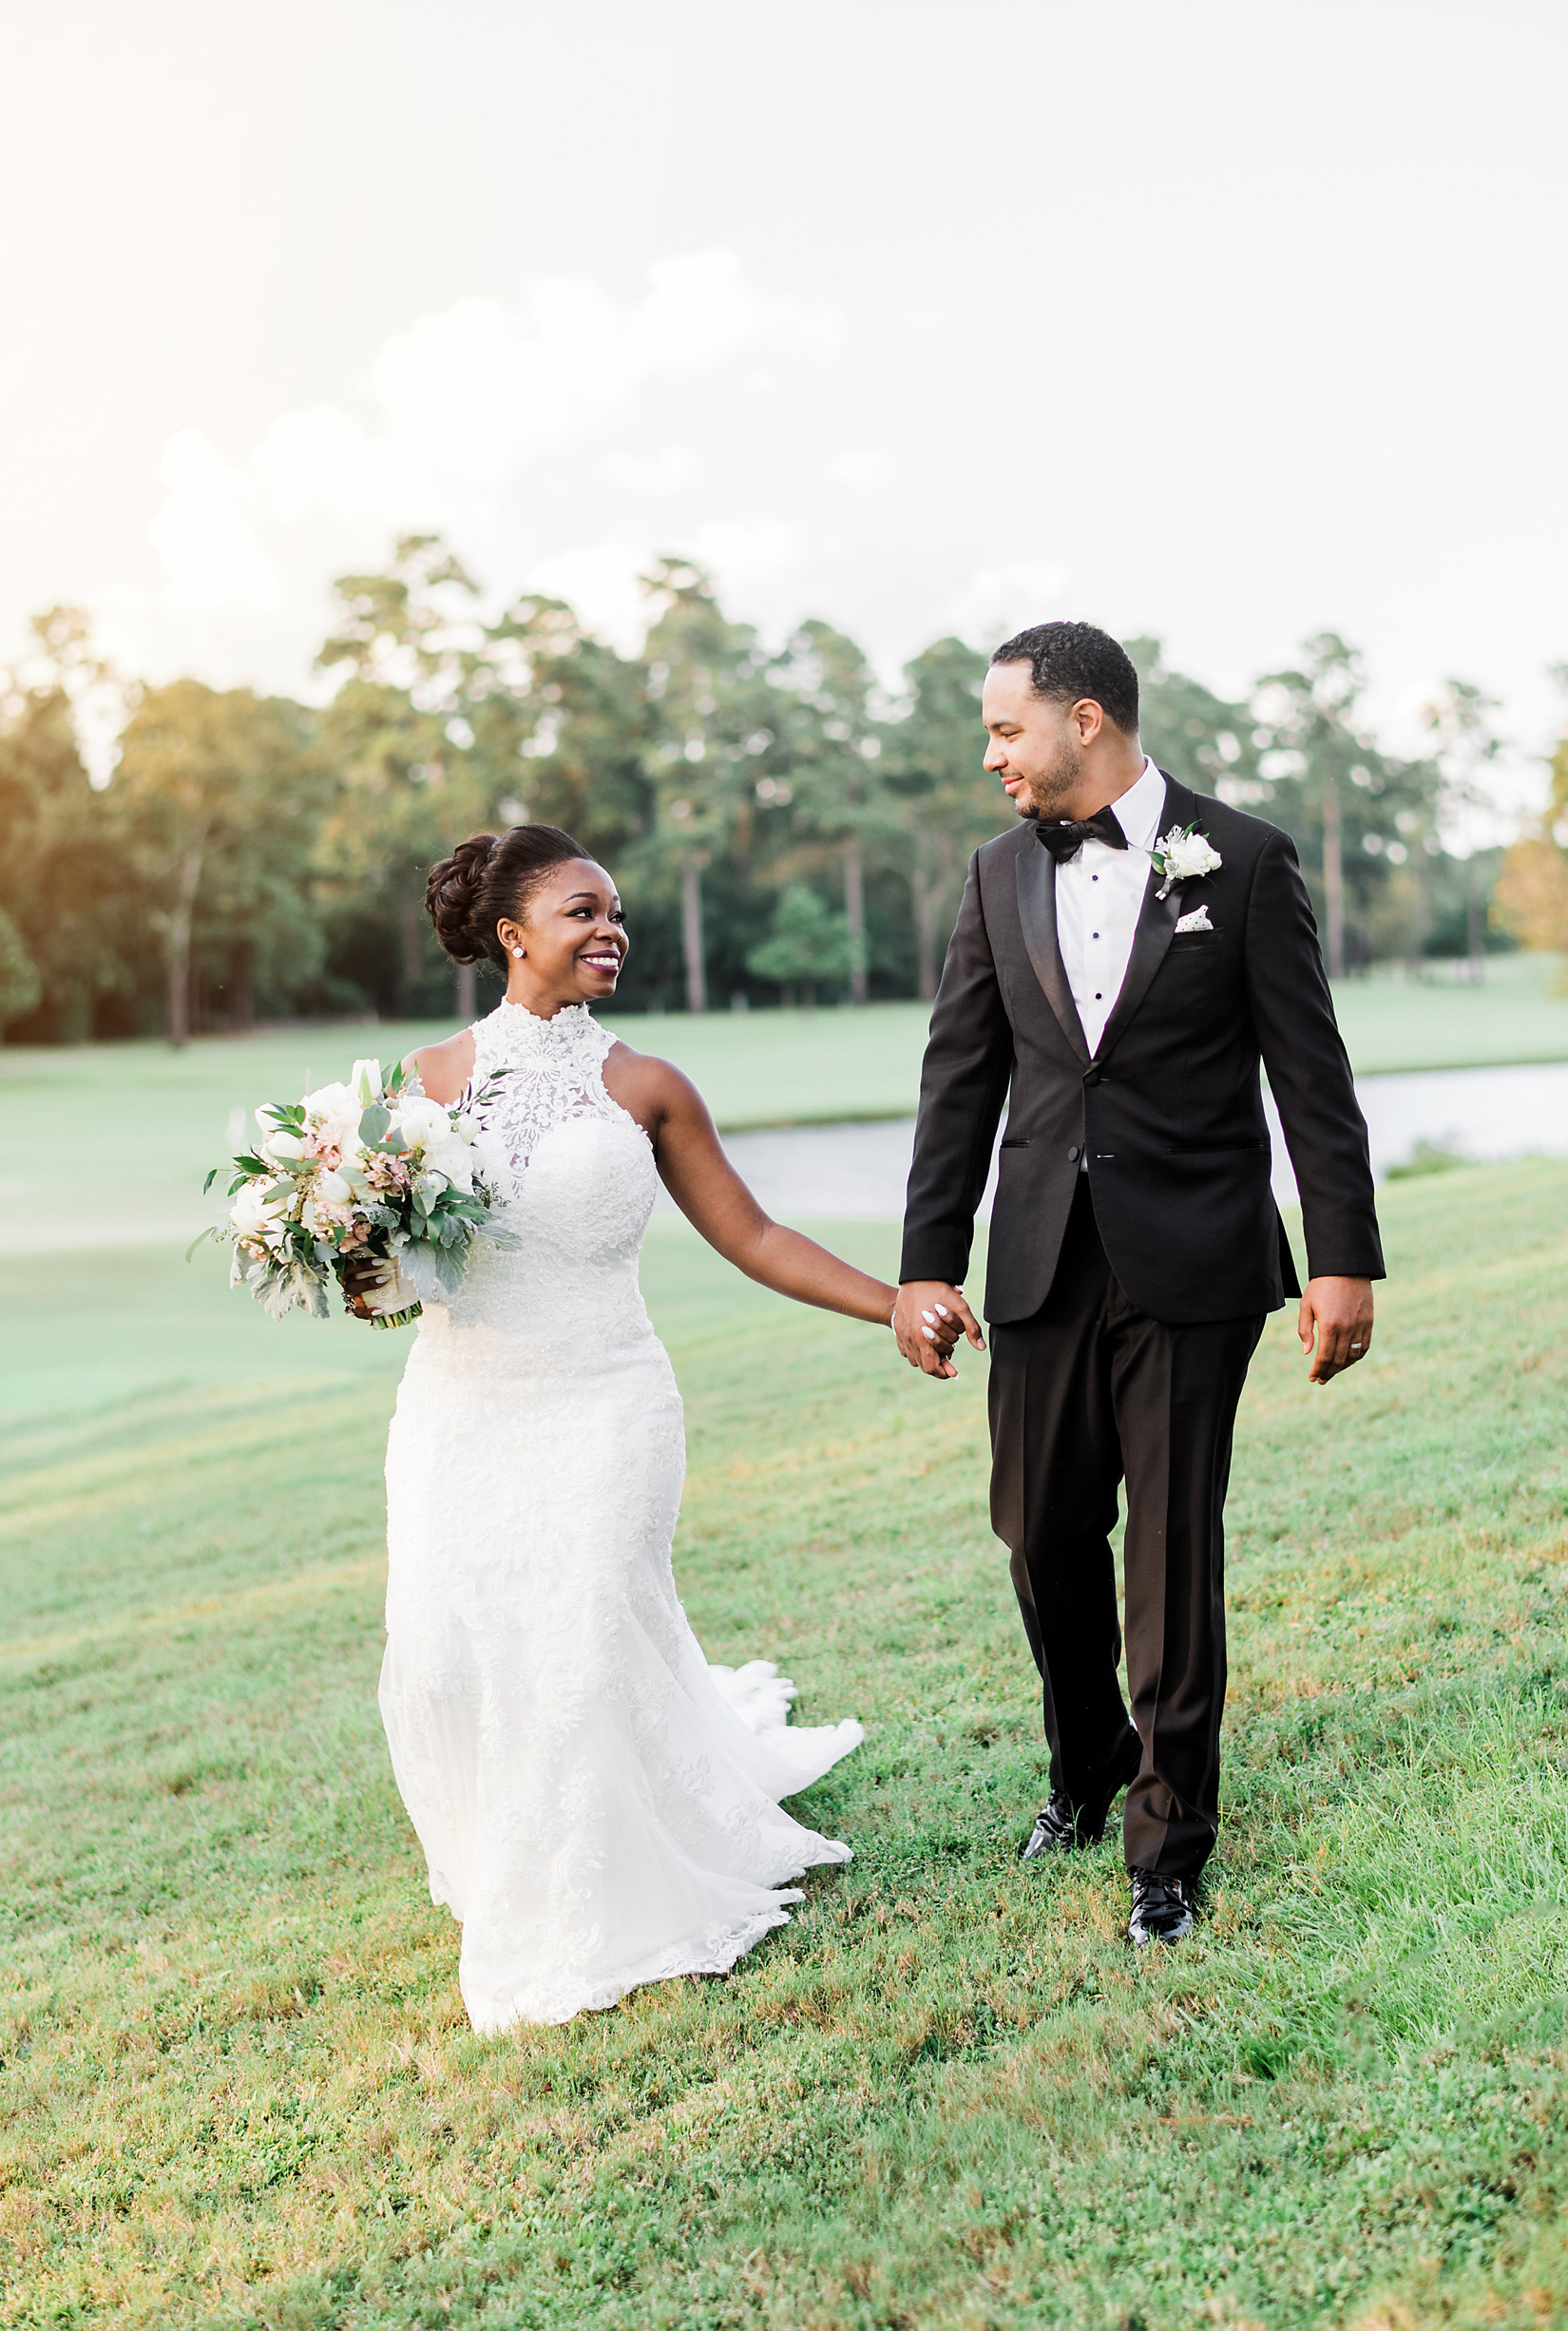 bride and groom smile holding hands on a grassy lawn outdoors